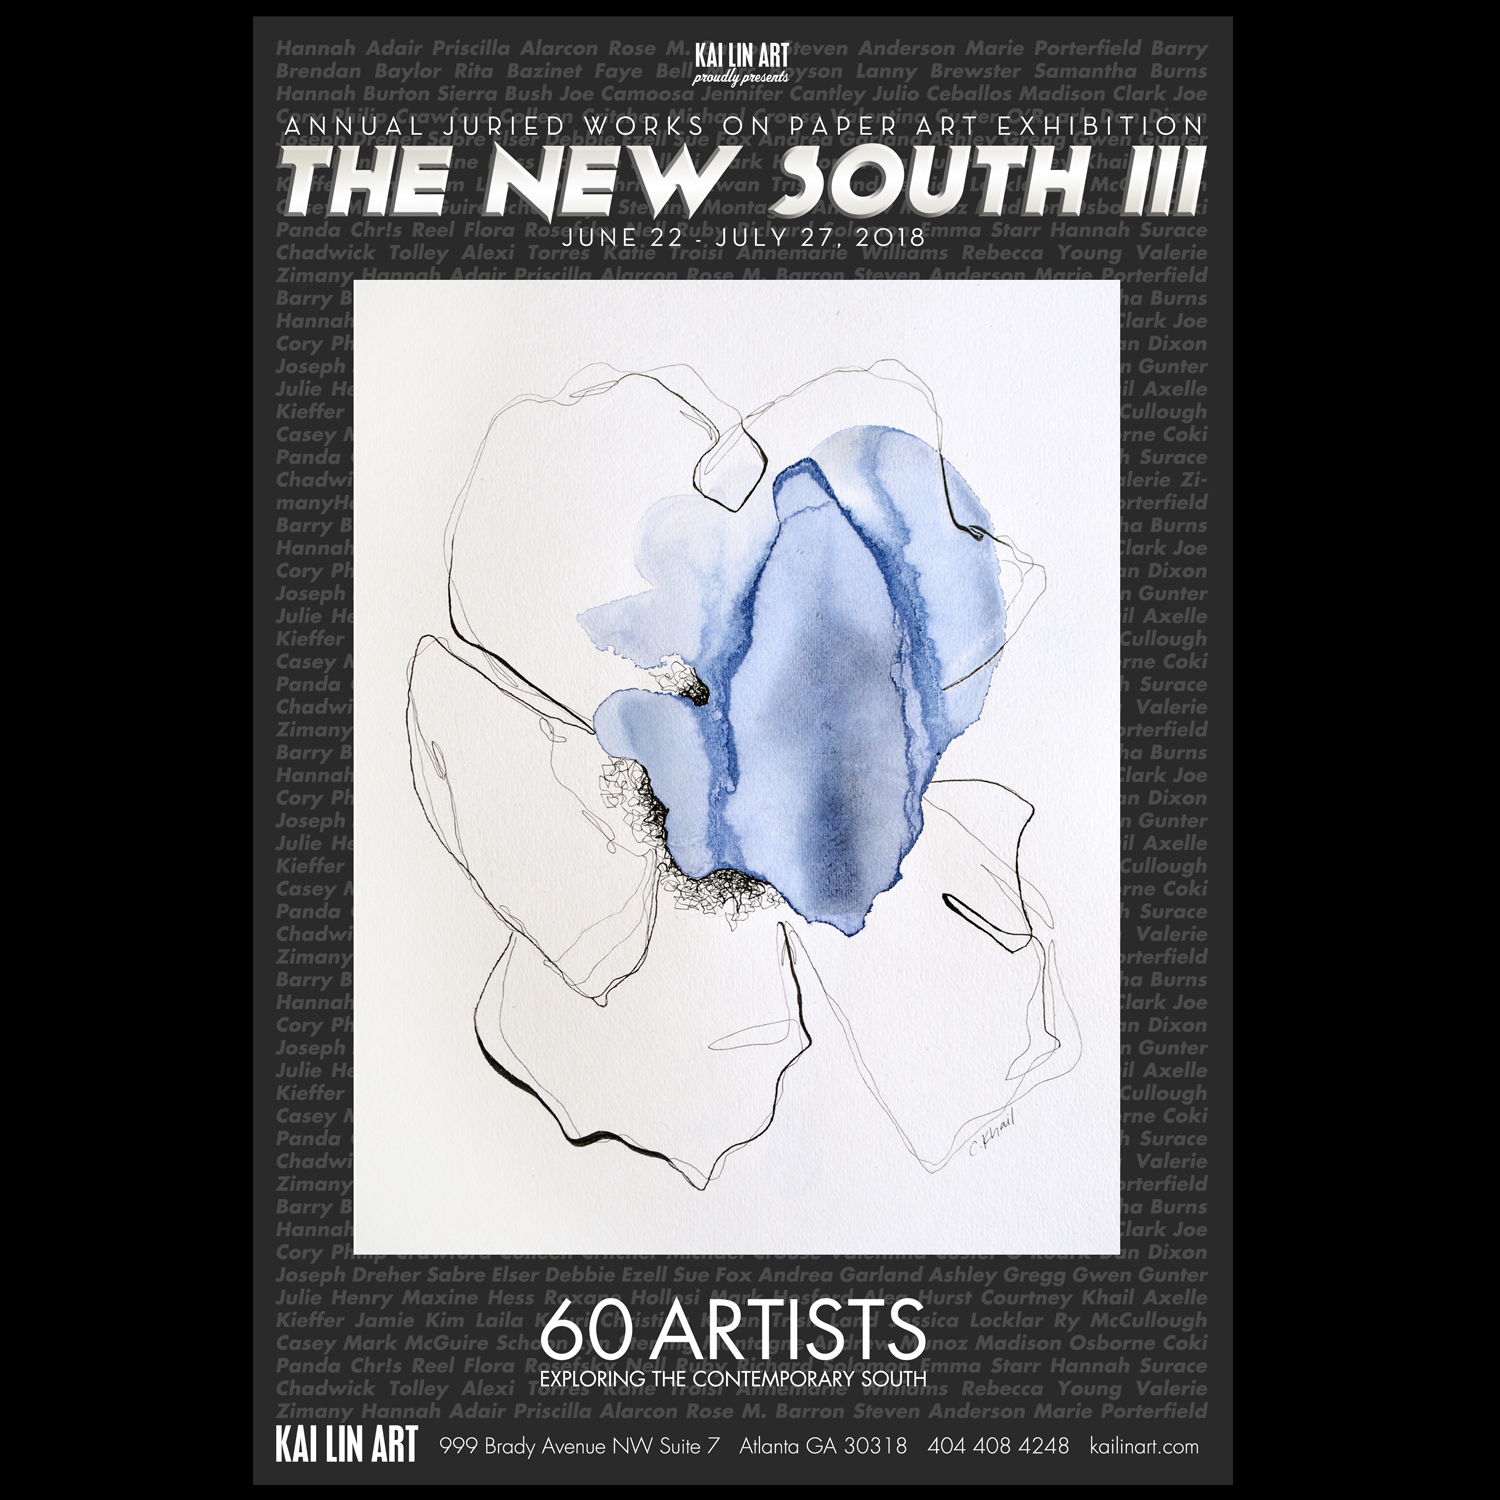 The New South III - The New South III June 22 - July 27, 2018Kai Lin Art's third annual juried exhibition of works on paper, The New South III. The show explores the contemporary South through the perspectives of 60 artists living and working throughout the Southeast. From over 1,000 submitted artworks, 75 pieces were selected for the exhibition, including Courtney Khail's painting Dreams In Color: Indigo.Overseeing the selection process this year are our jurors Justin Rabideau, Director of The Bernard A. Zuckerman Museum at Kennesaw State University and Larry Jens Anderson, Professor of Art at The Atlanta College of Art & SCAD-Atlanta.